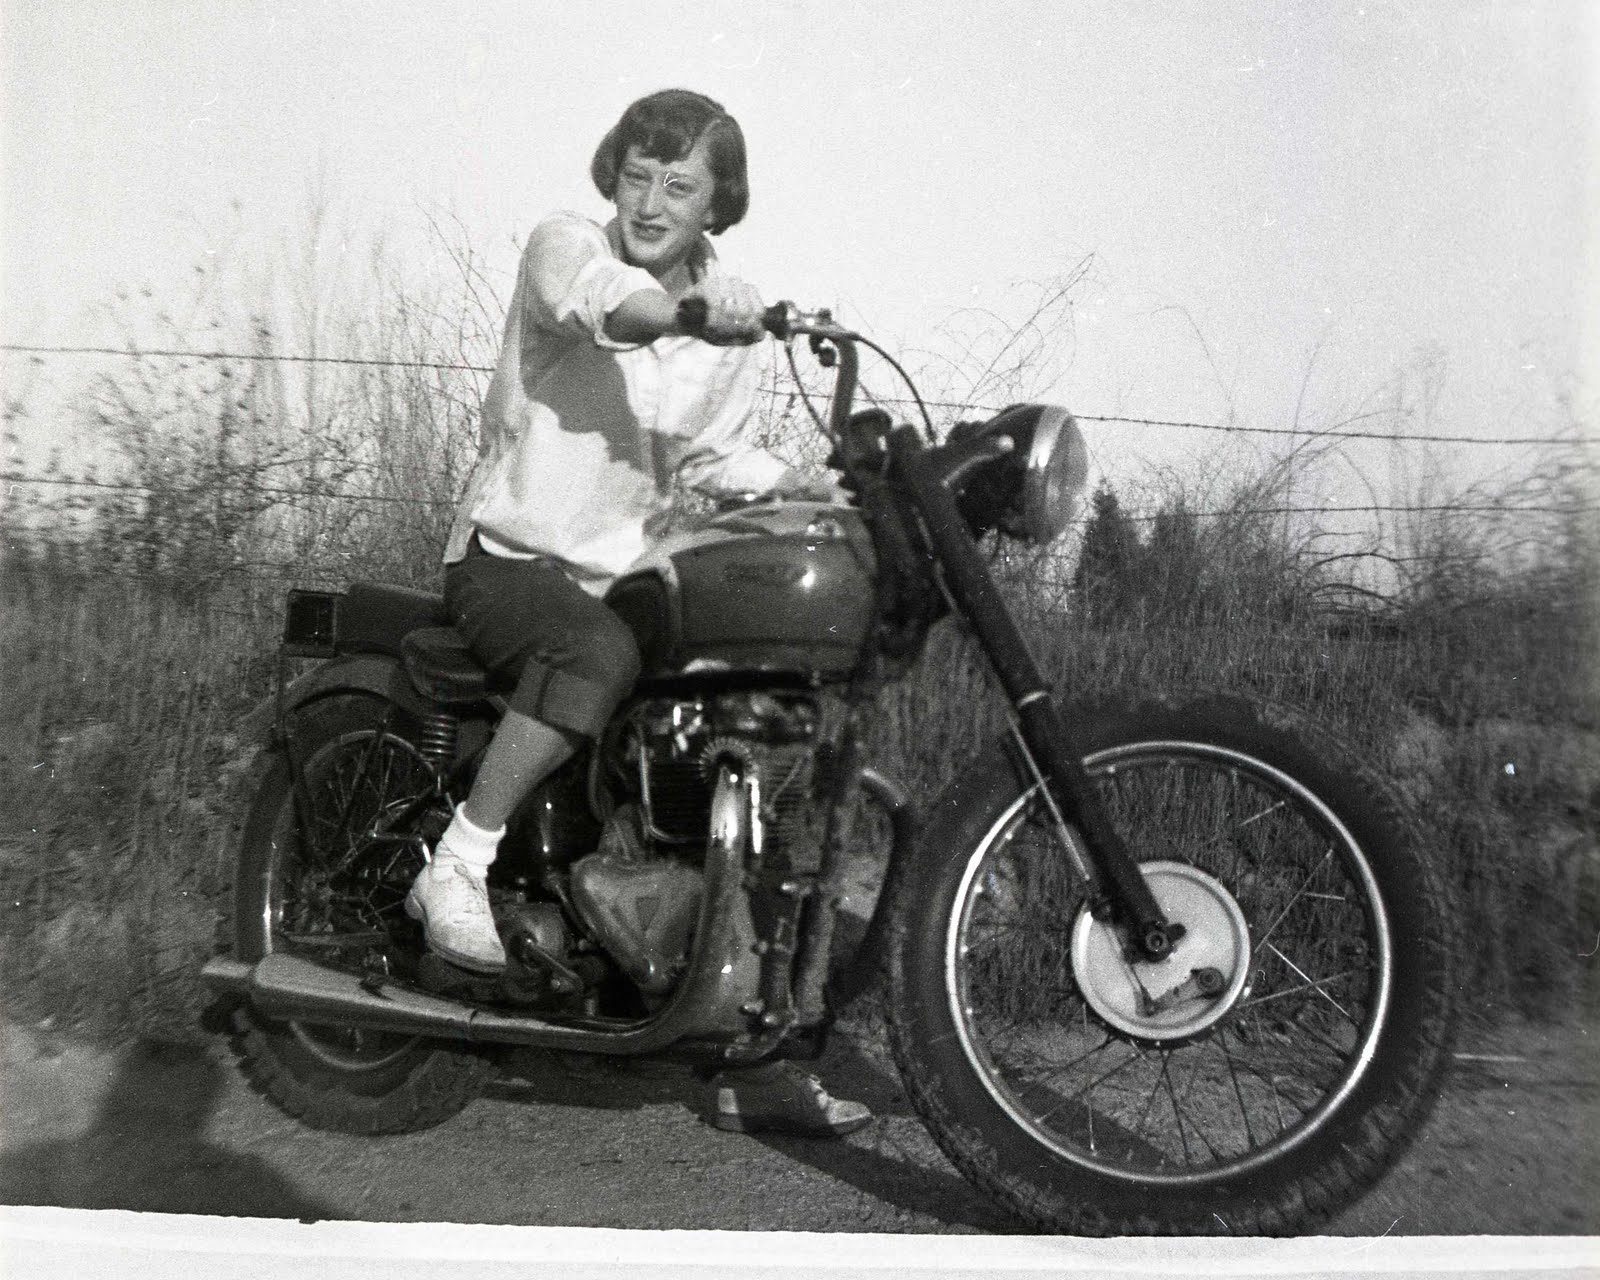 Vintage-motorcycle-girl-01